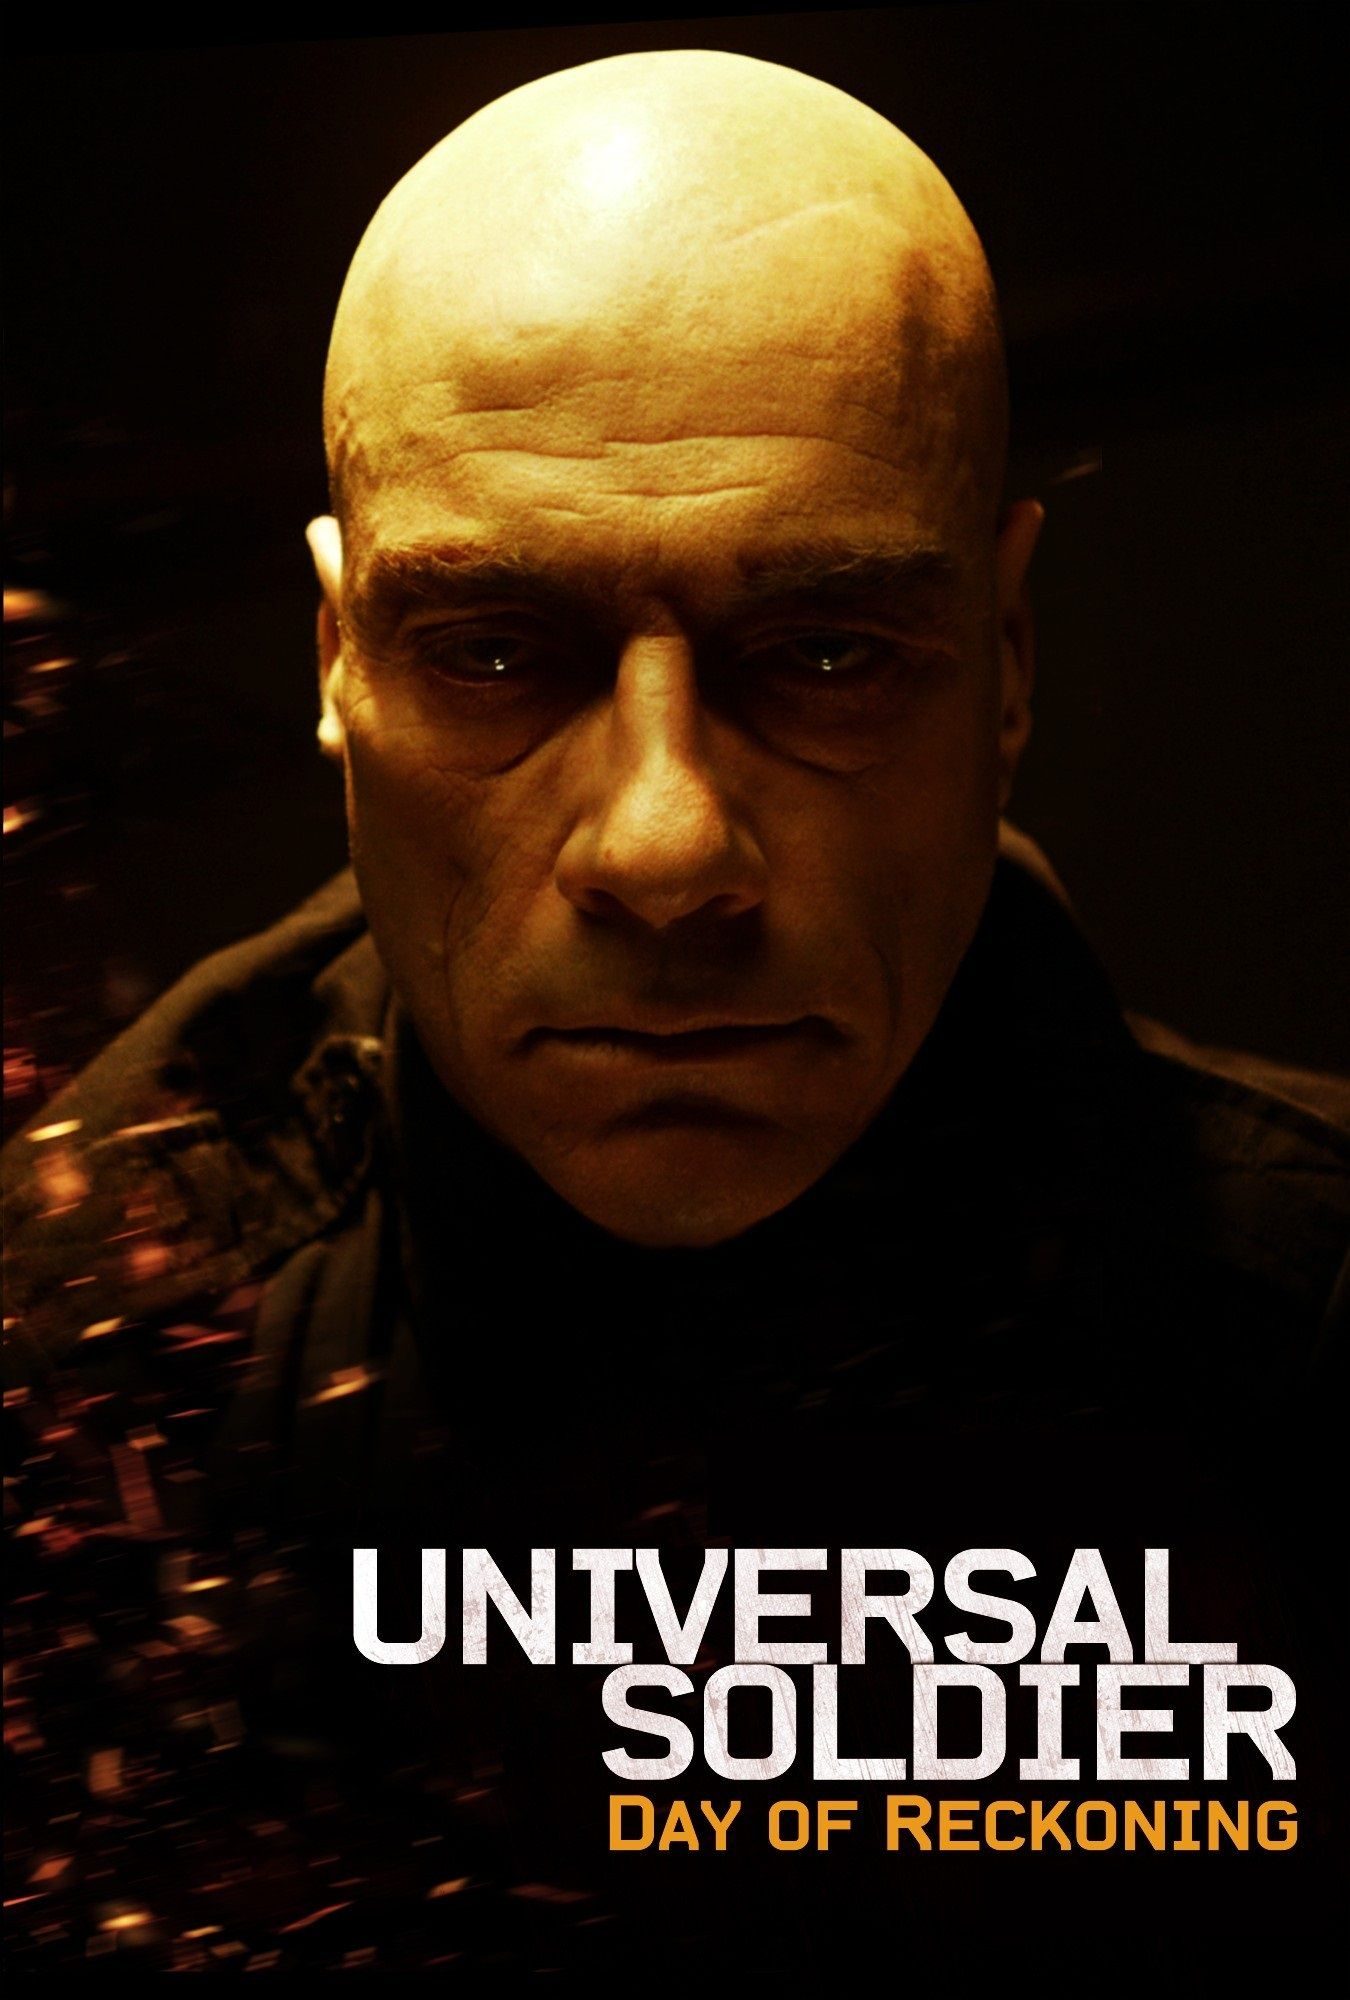 Universal soldier Day of reckoning (2012) John Hyams nel